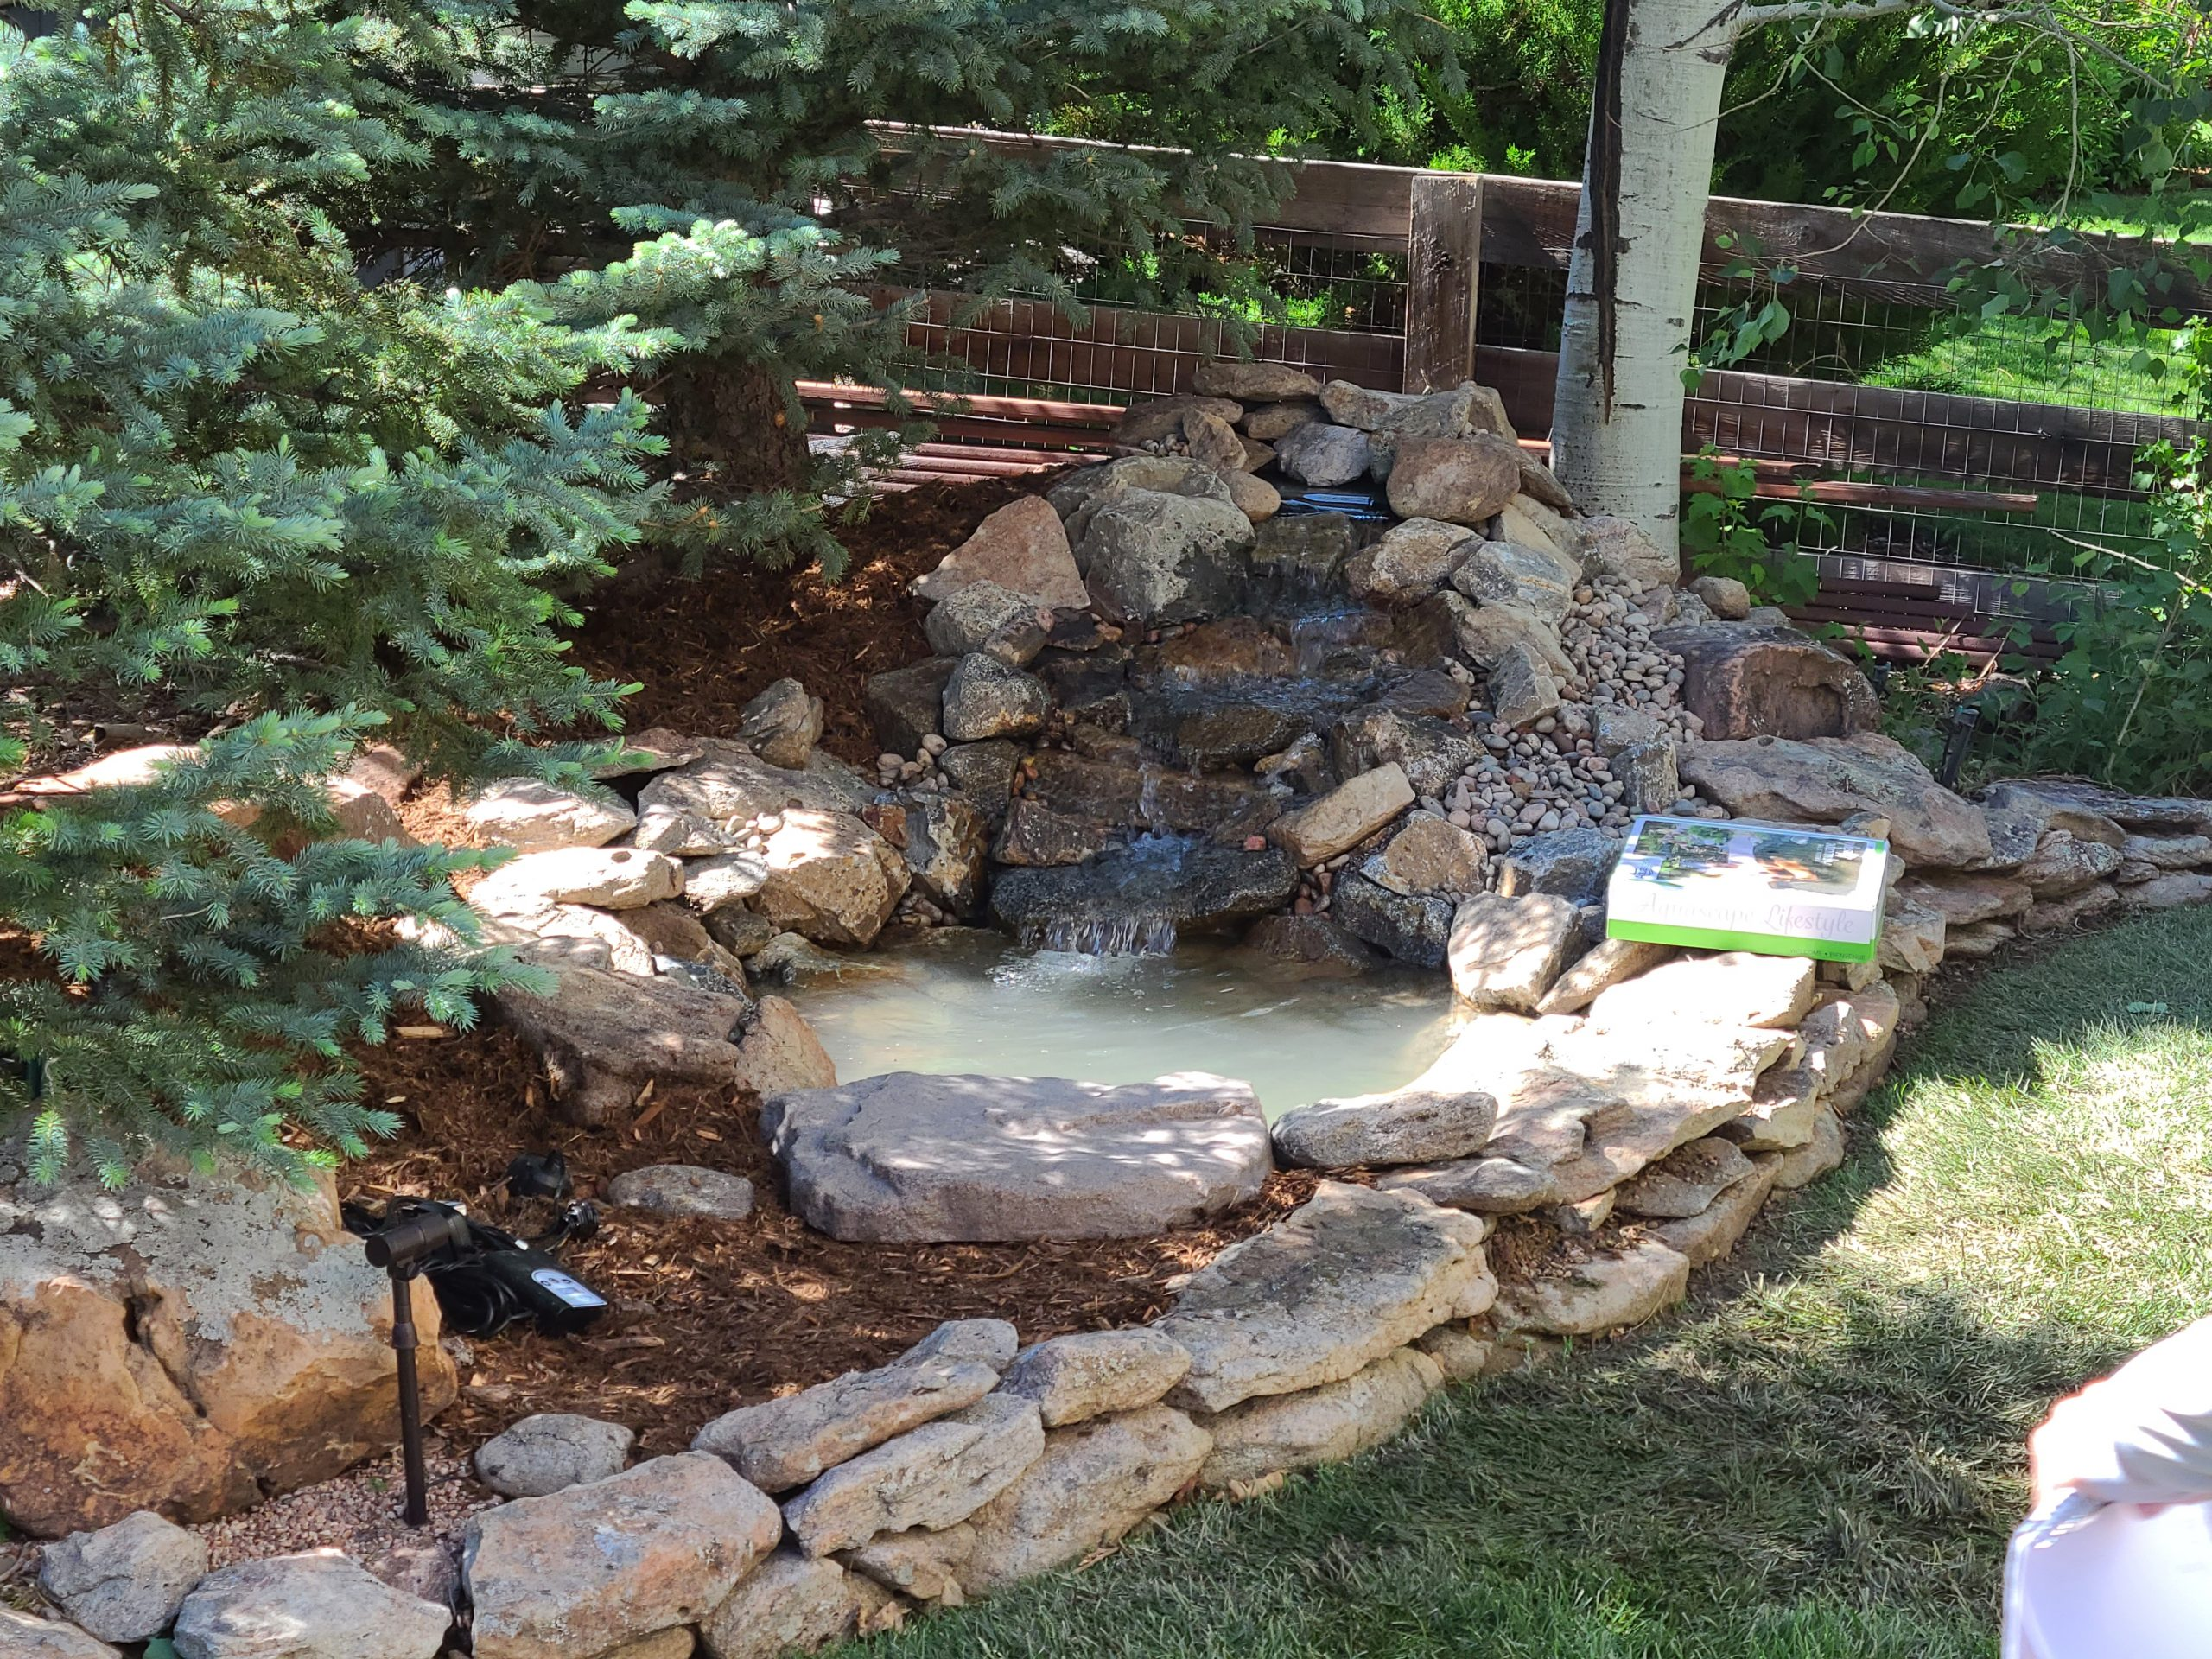 Review by Victoria T. in Littleton, CO